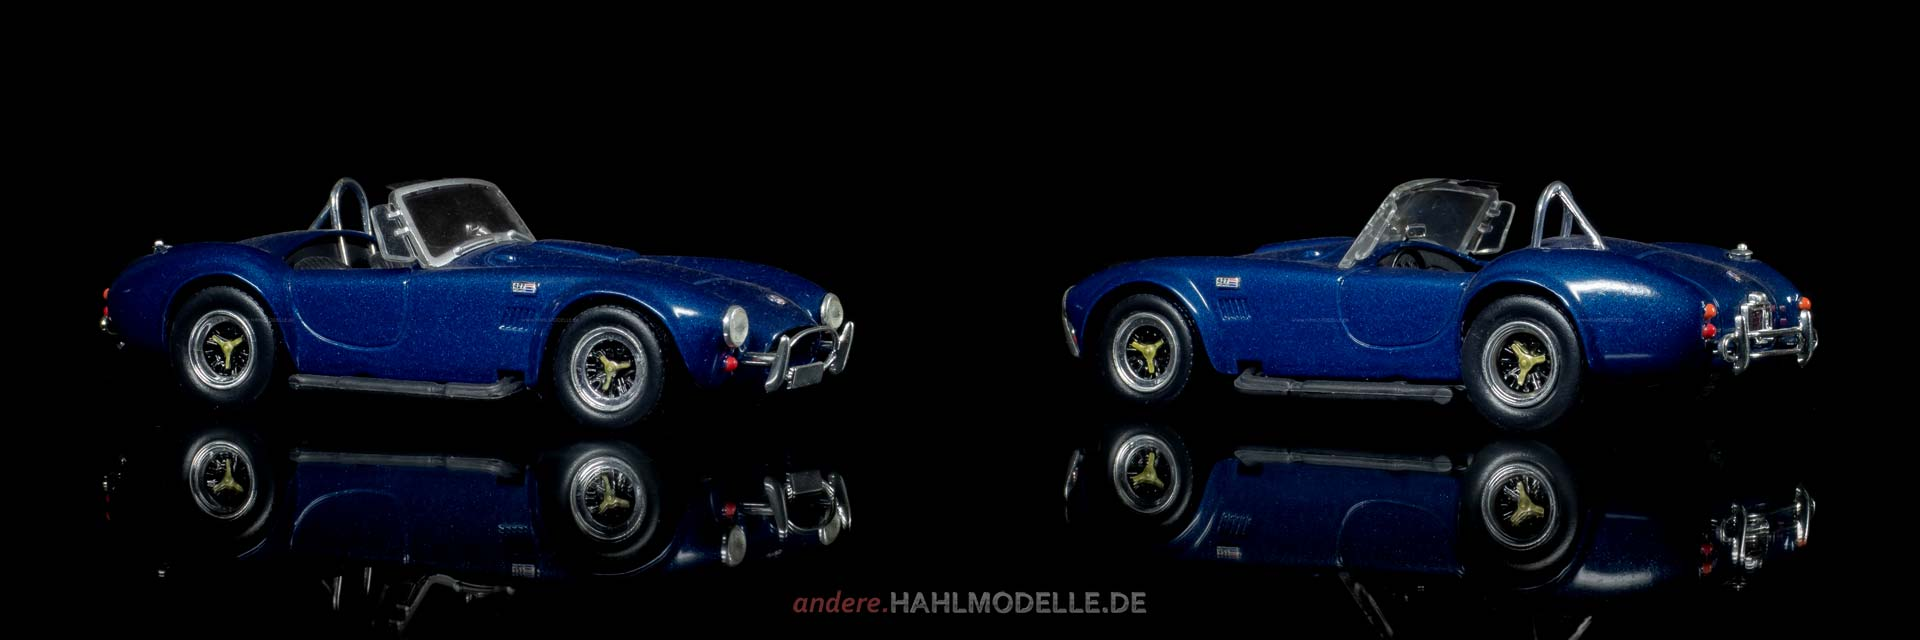 AC Cars Ltd. Shelby Cobra | Roadster | Ixo (Del Prado Car Collection) | 1:43 | www.andere.hahlmodelle.de